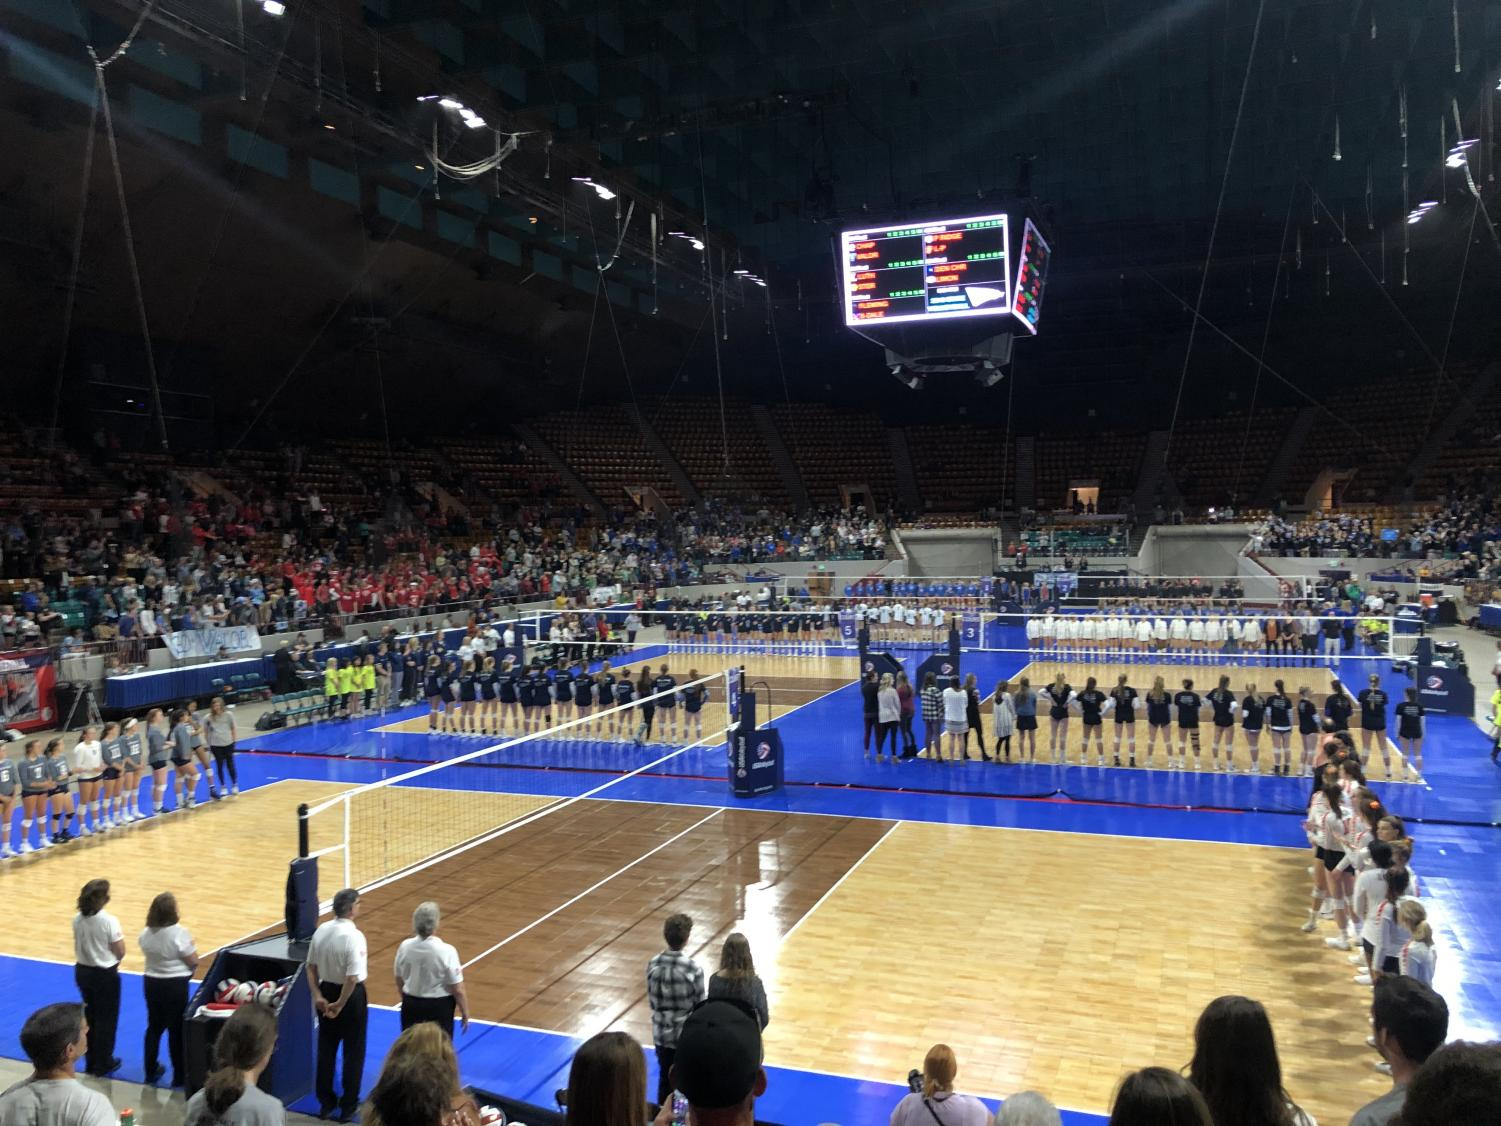 """The volleyball team lining up to announce all the teams that made it to the championship. """"I am so happy the girls beat Palmer-Ridge."""" Hannah Johnson 11 said,"""" Volleyball is are thing and I'm so glad that they one.""""  Photo Credit: Holly Espesito"""